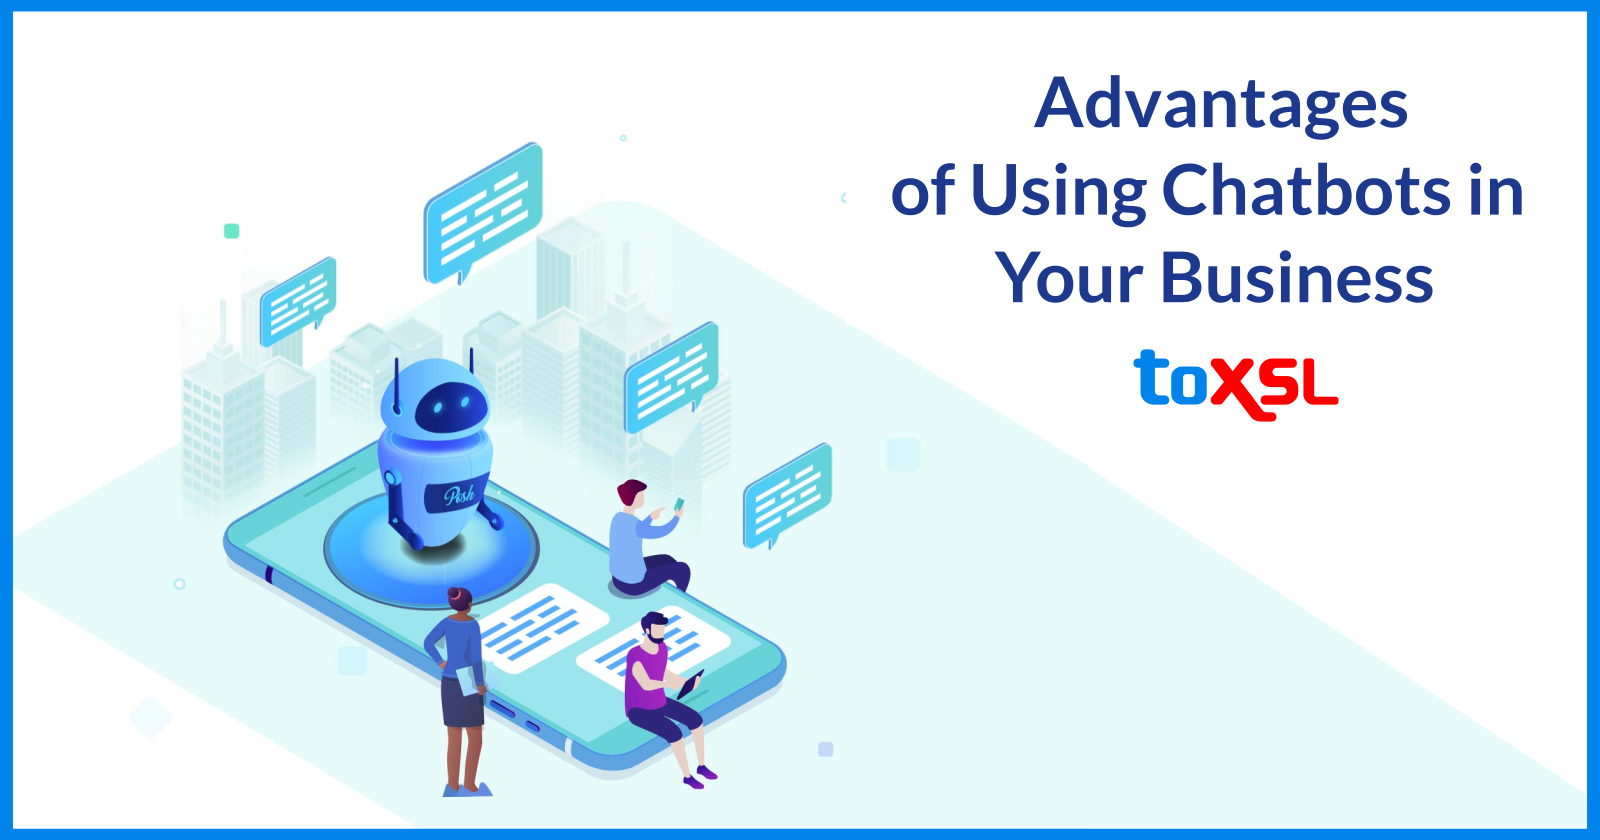 Top 6 Advantages of Using Chatbots in Your Business